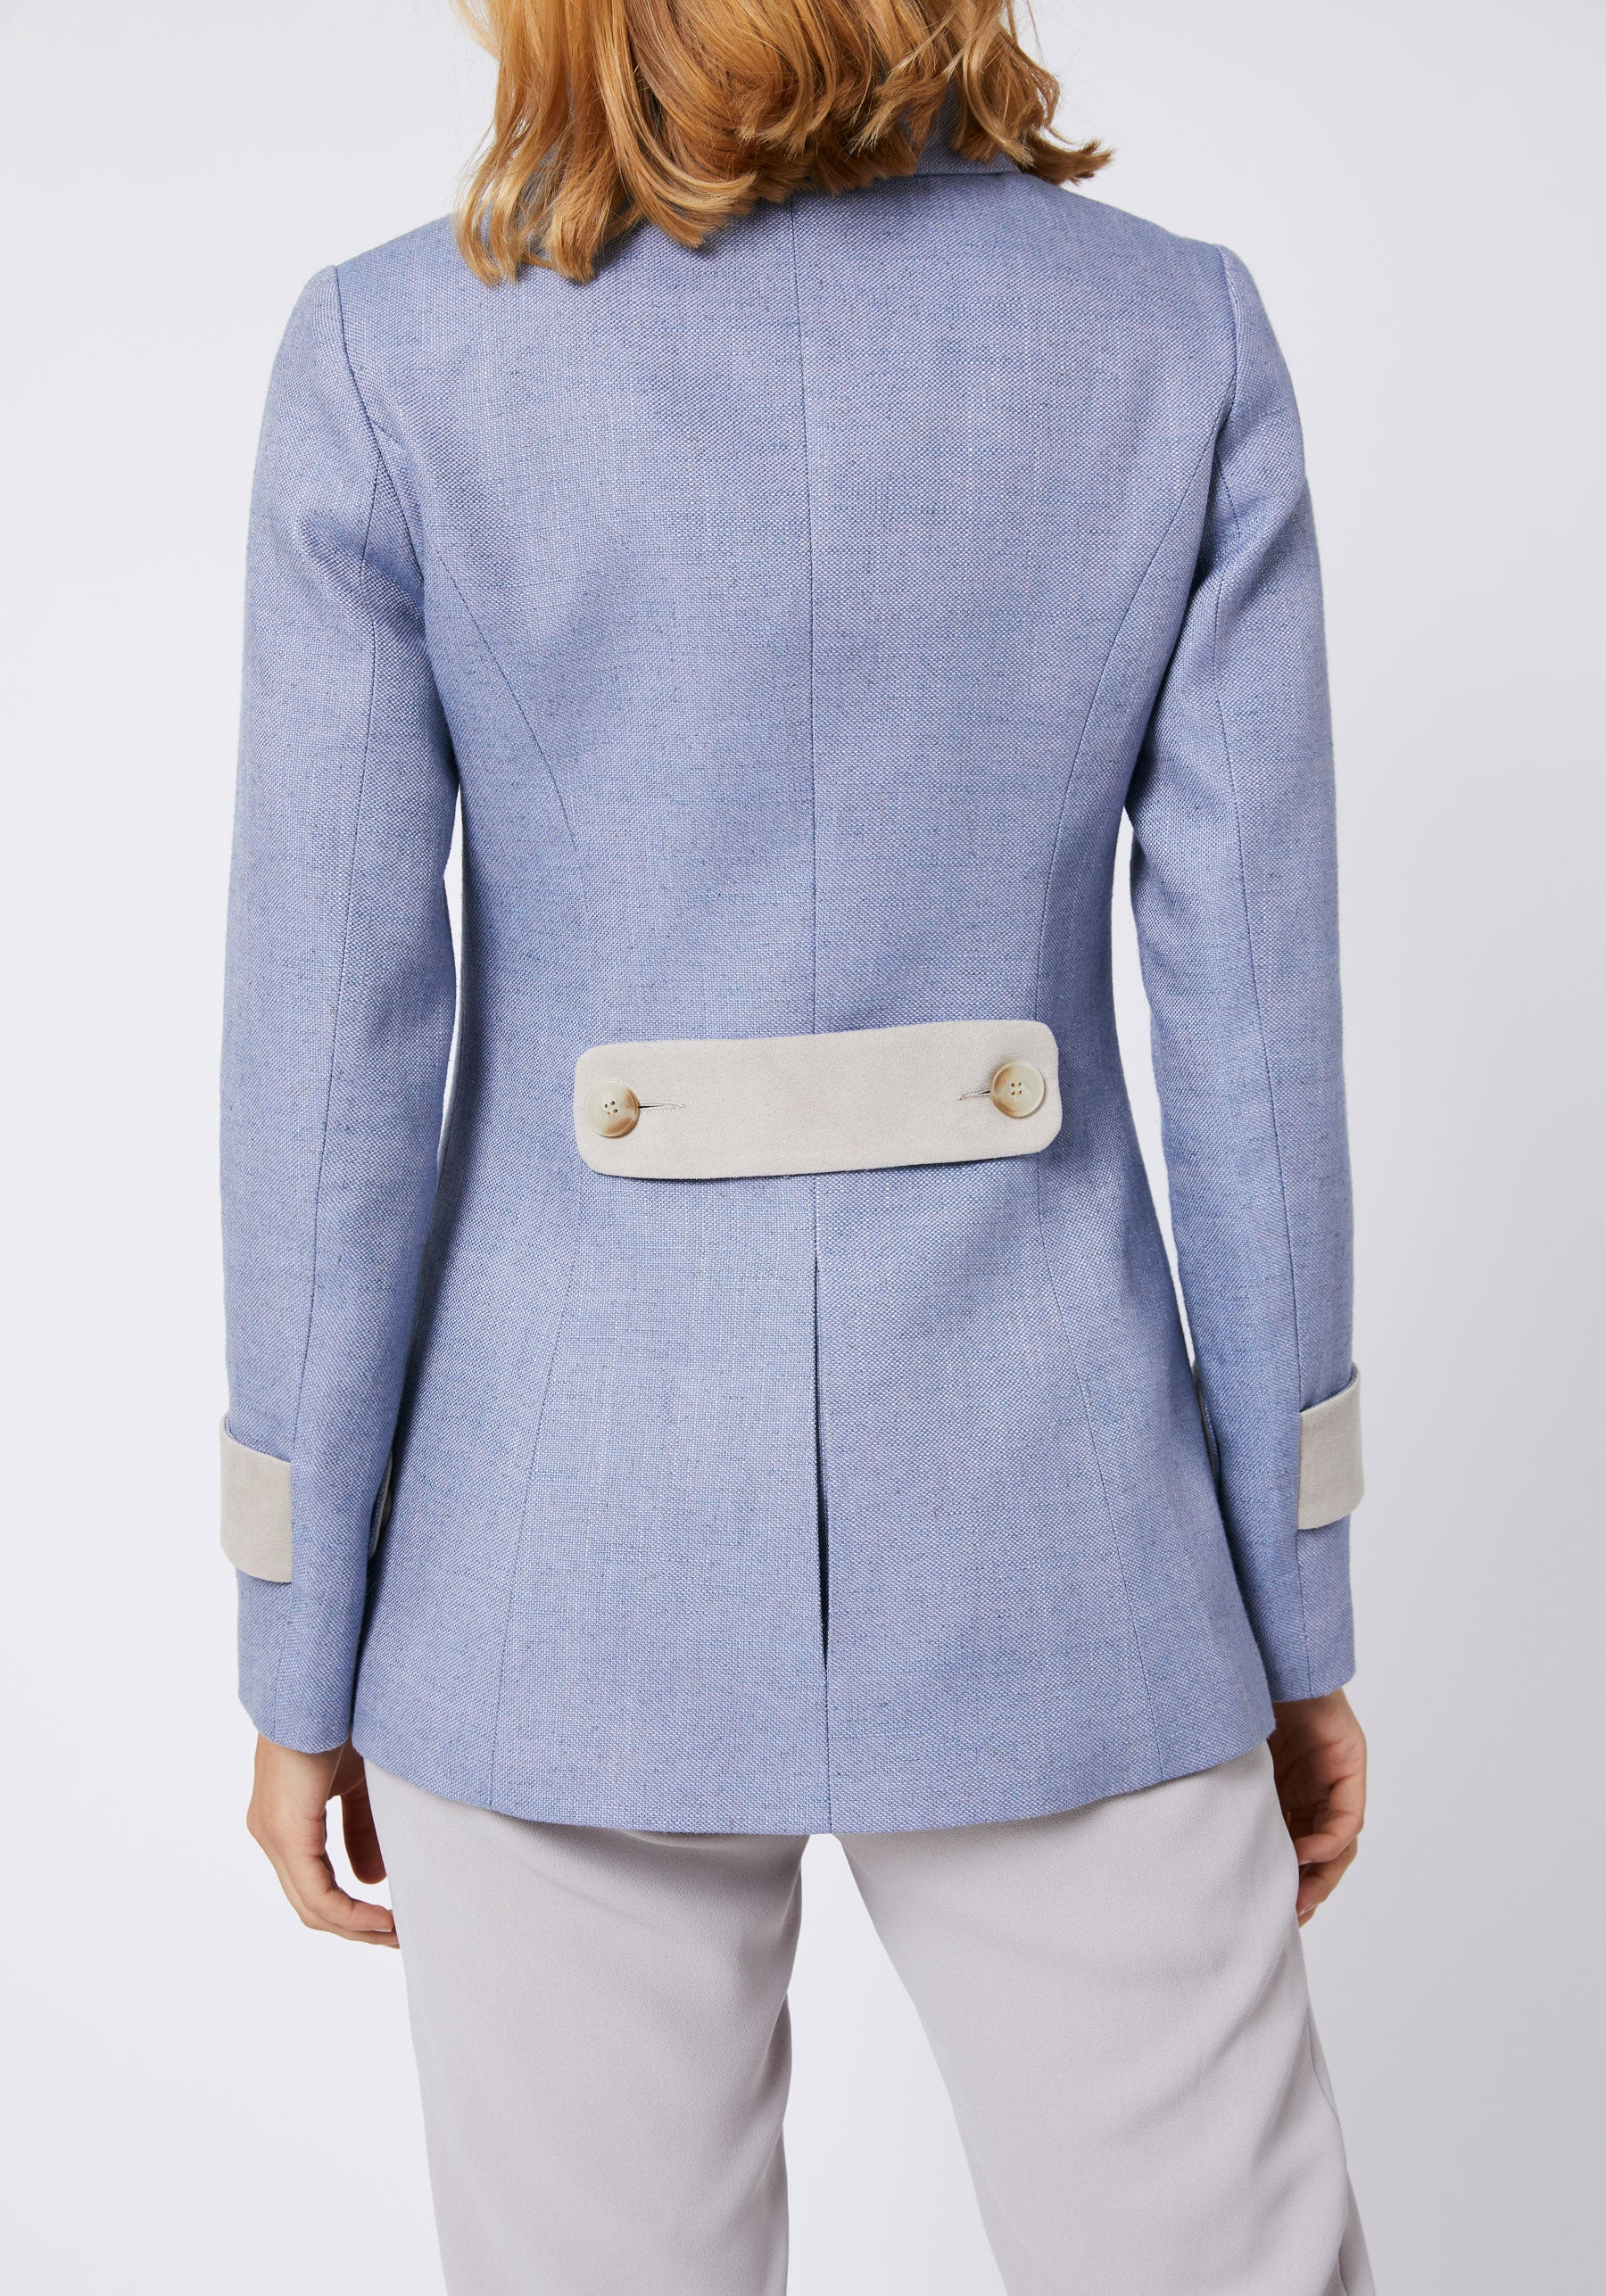 Hendre Jacket in Lilac